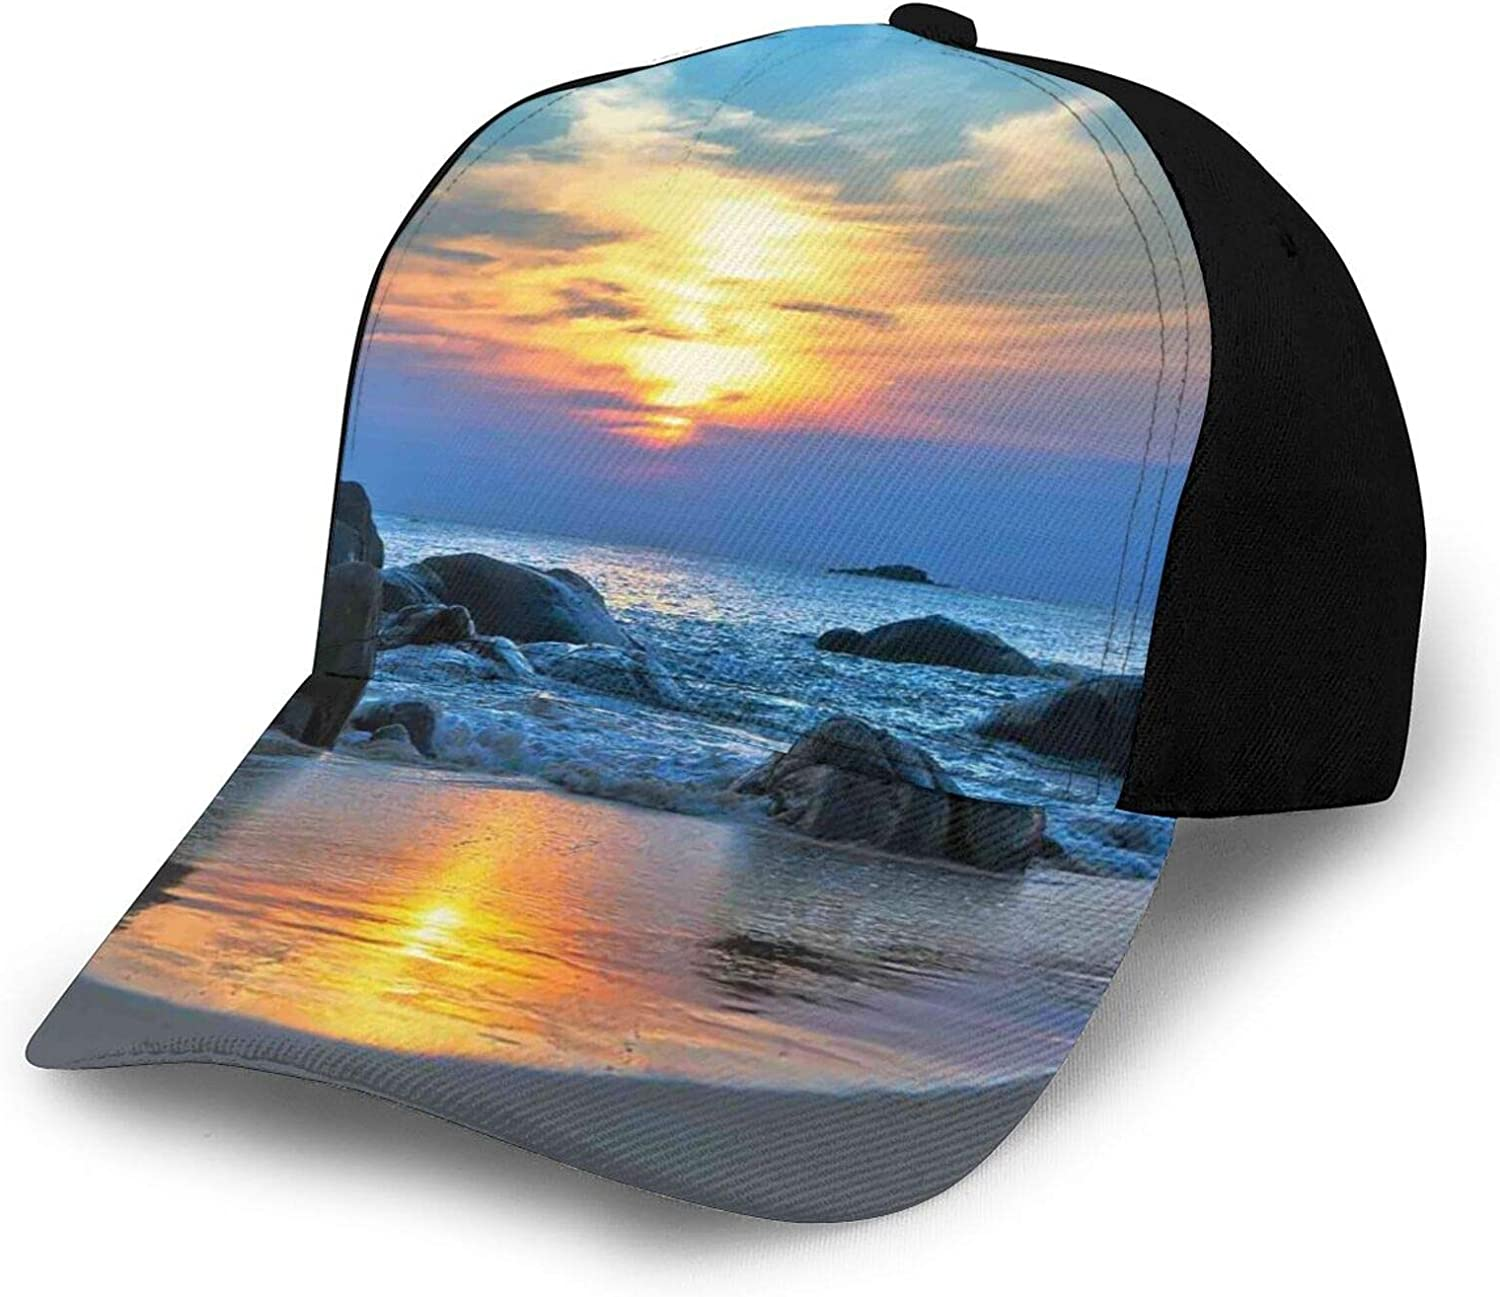 Structured Baseball Cap Sunset Free Shipping New Scenery Year-end gift Rock with Beach Sandy in